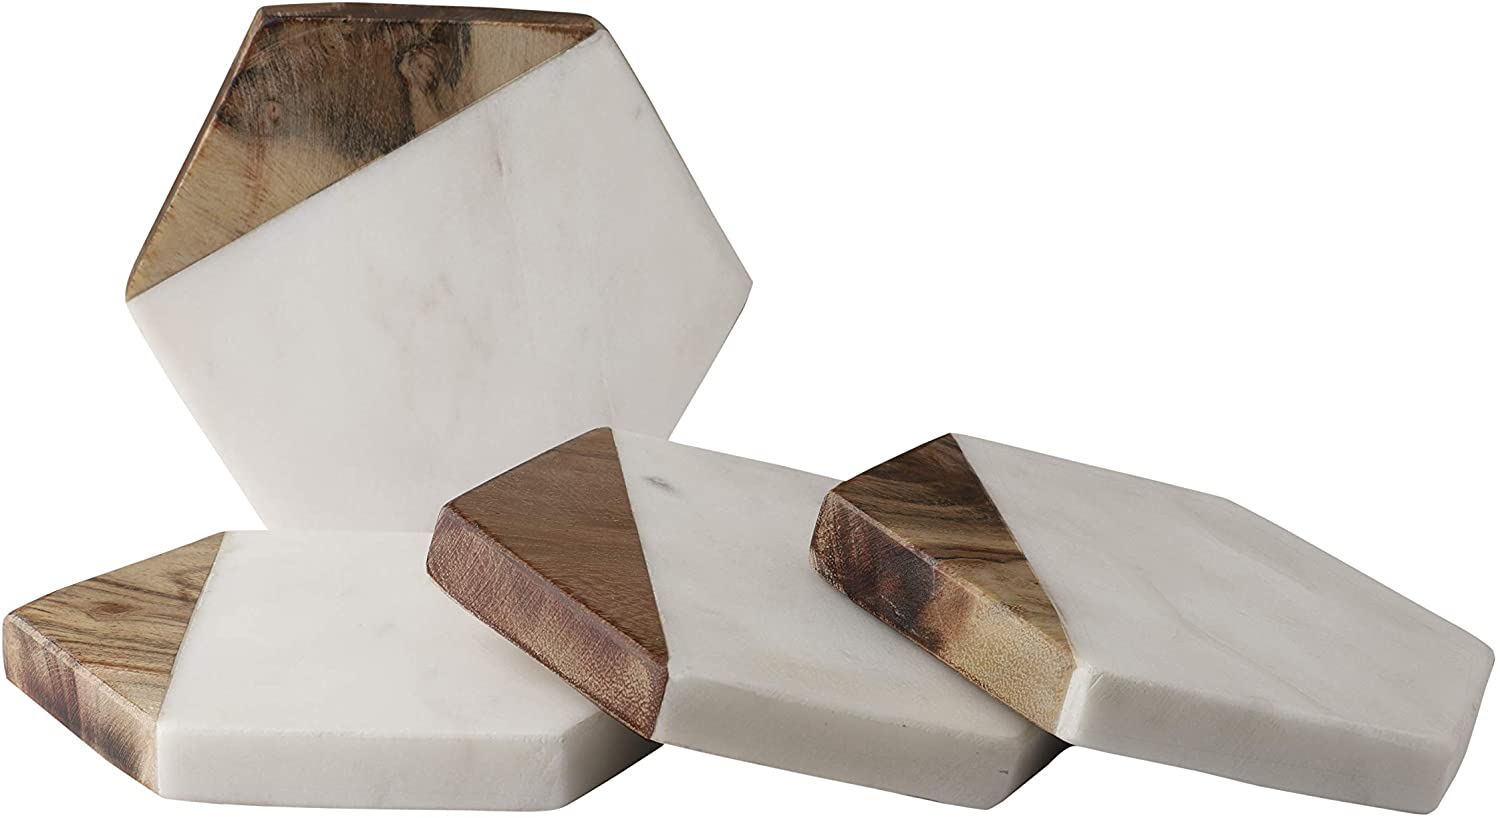 GoCraft Marble & Wood Coasters | Handcrafted Geometric White Marble Coasters with Mango Wood for your Drinks, Beverages & Wine/Bar Glasses (Set of 4)